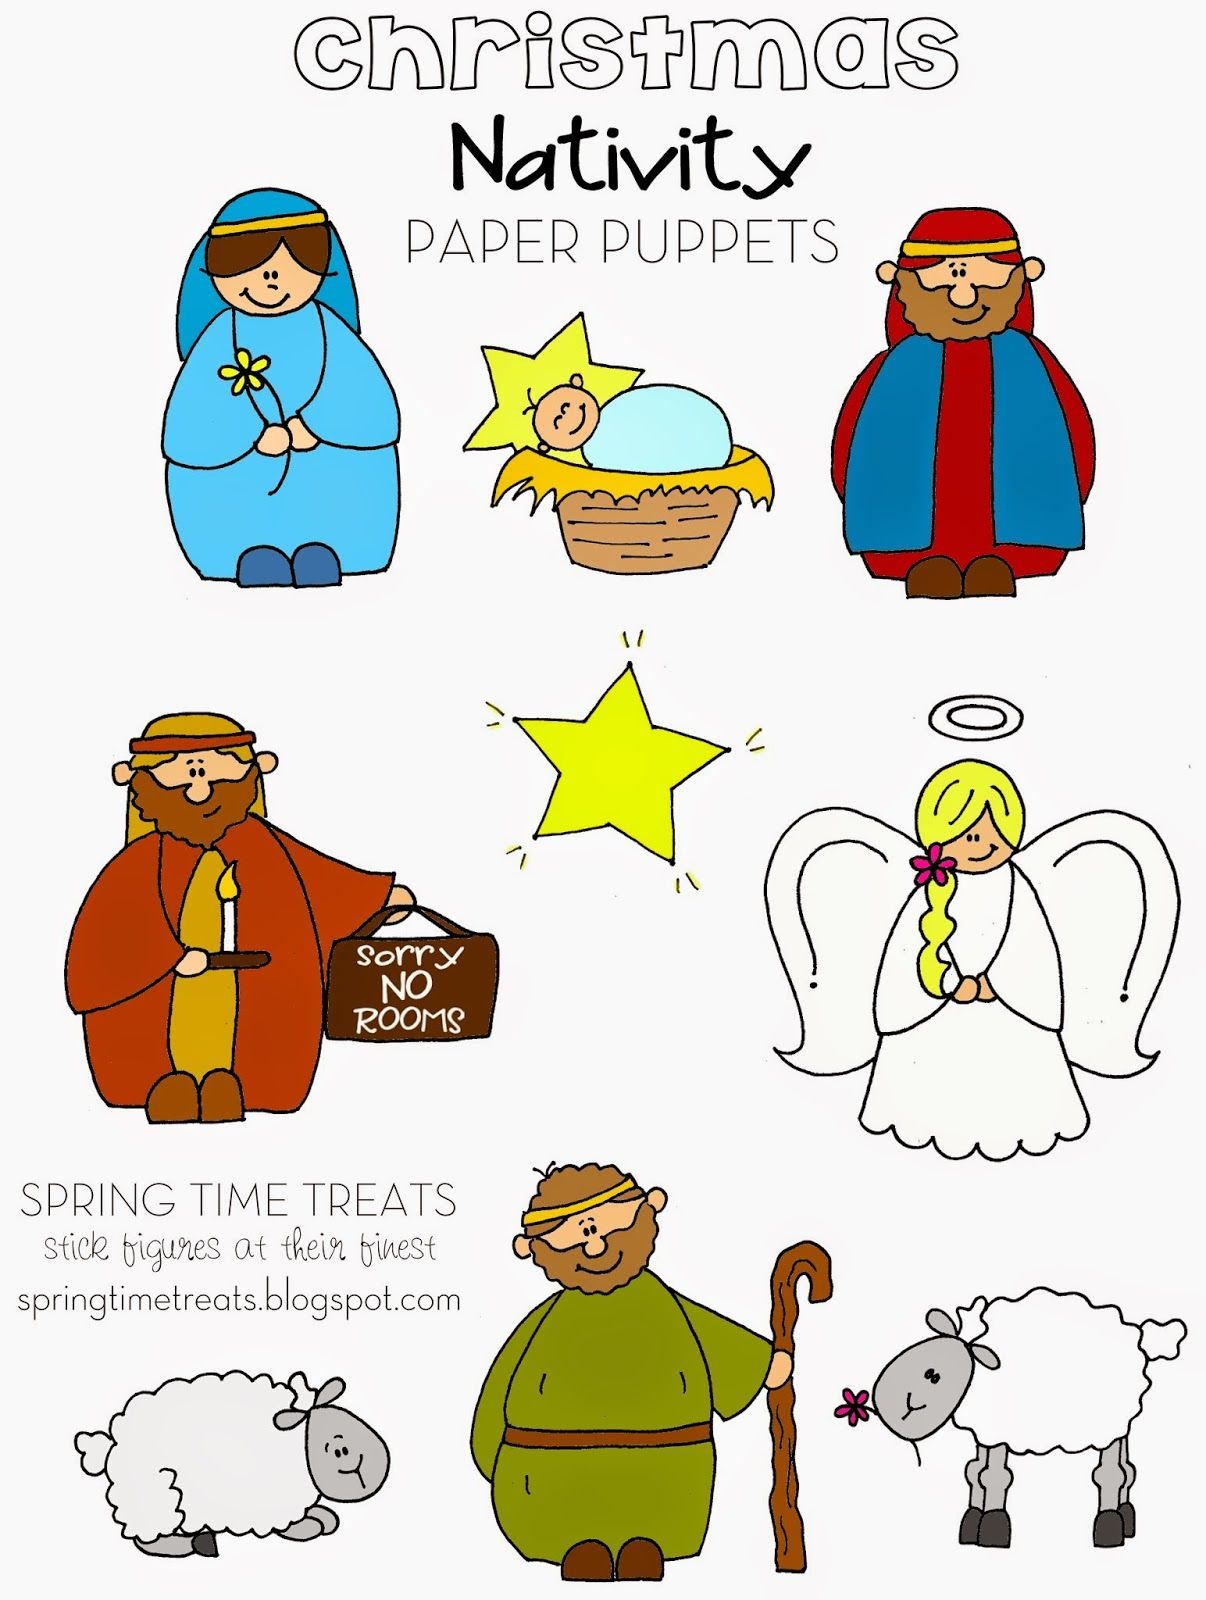 Spring time treats nativity paper puppets free printables spring time treats nativity paper puppets free printables jeuxipadfo Images